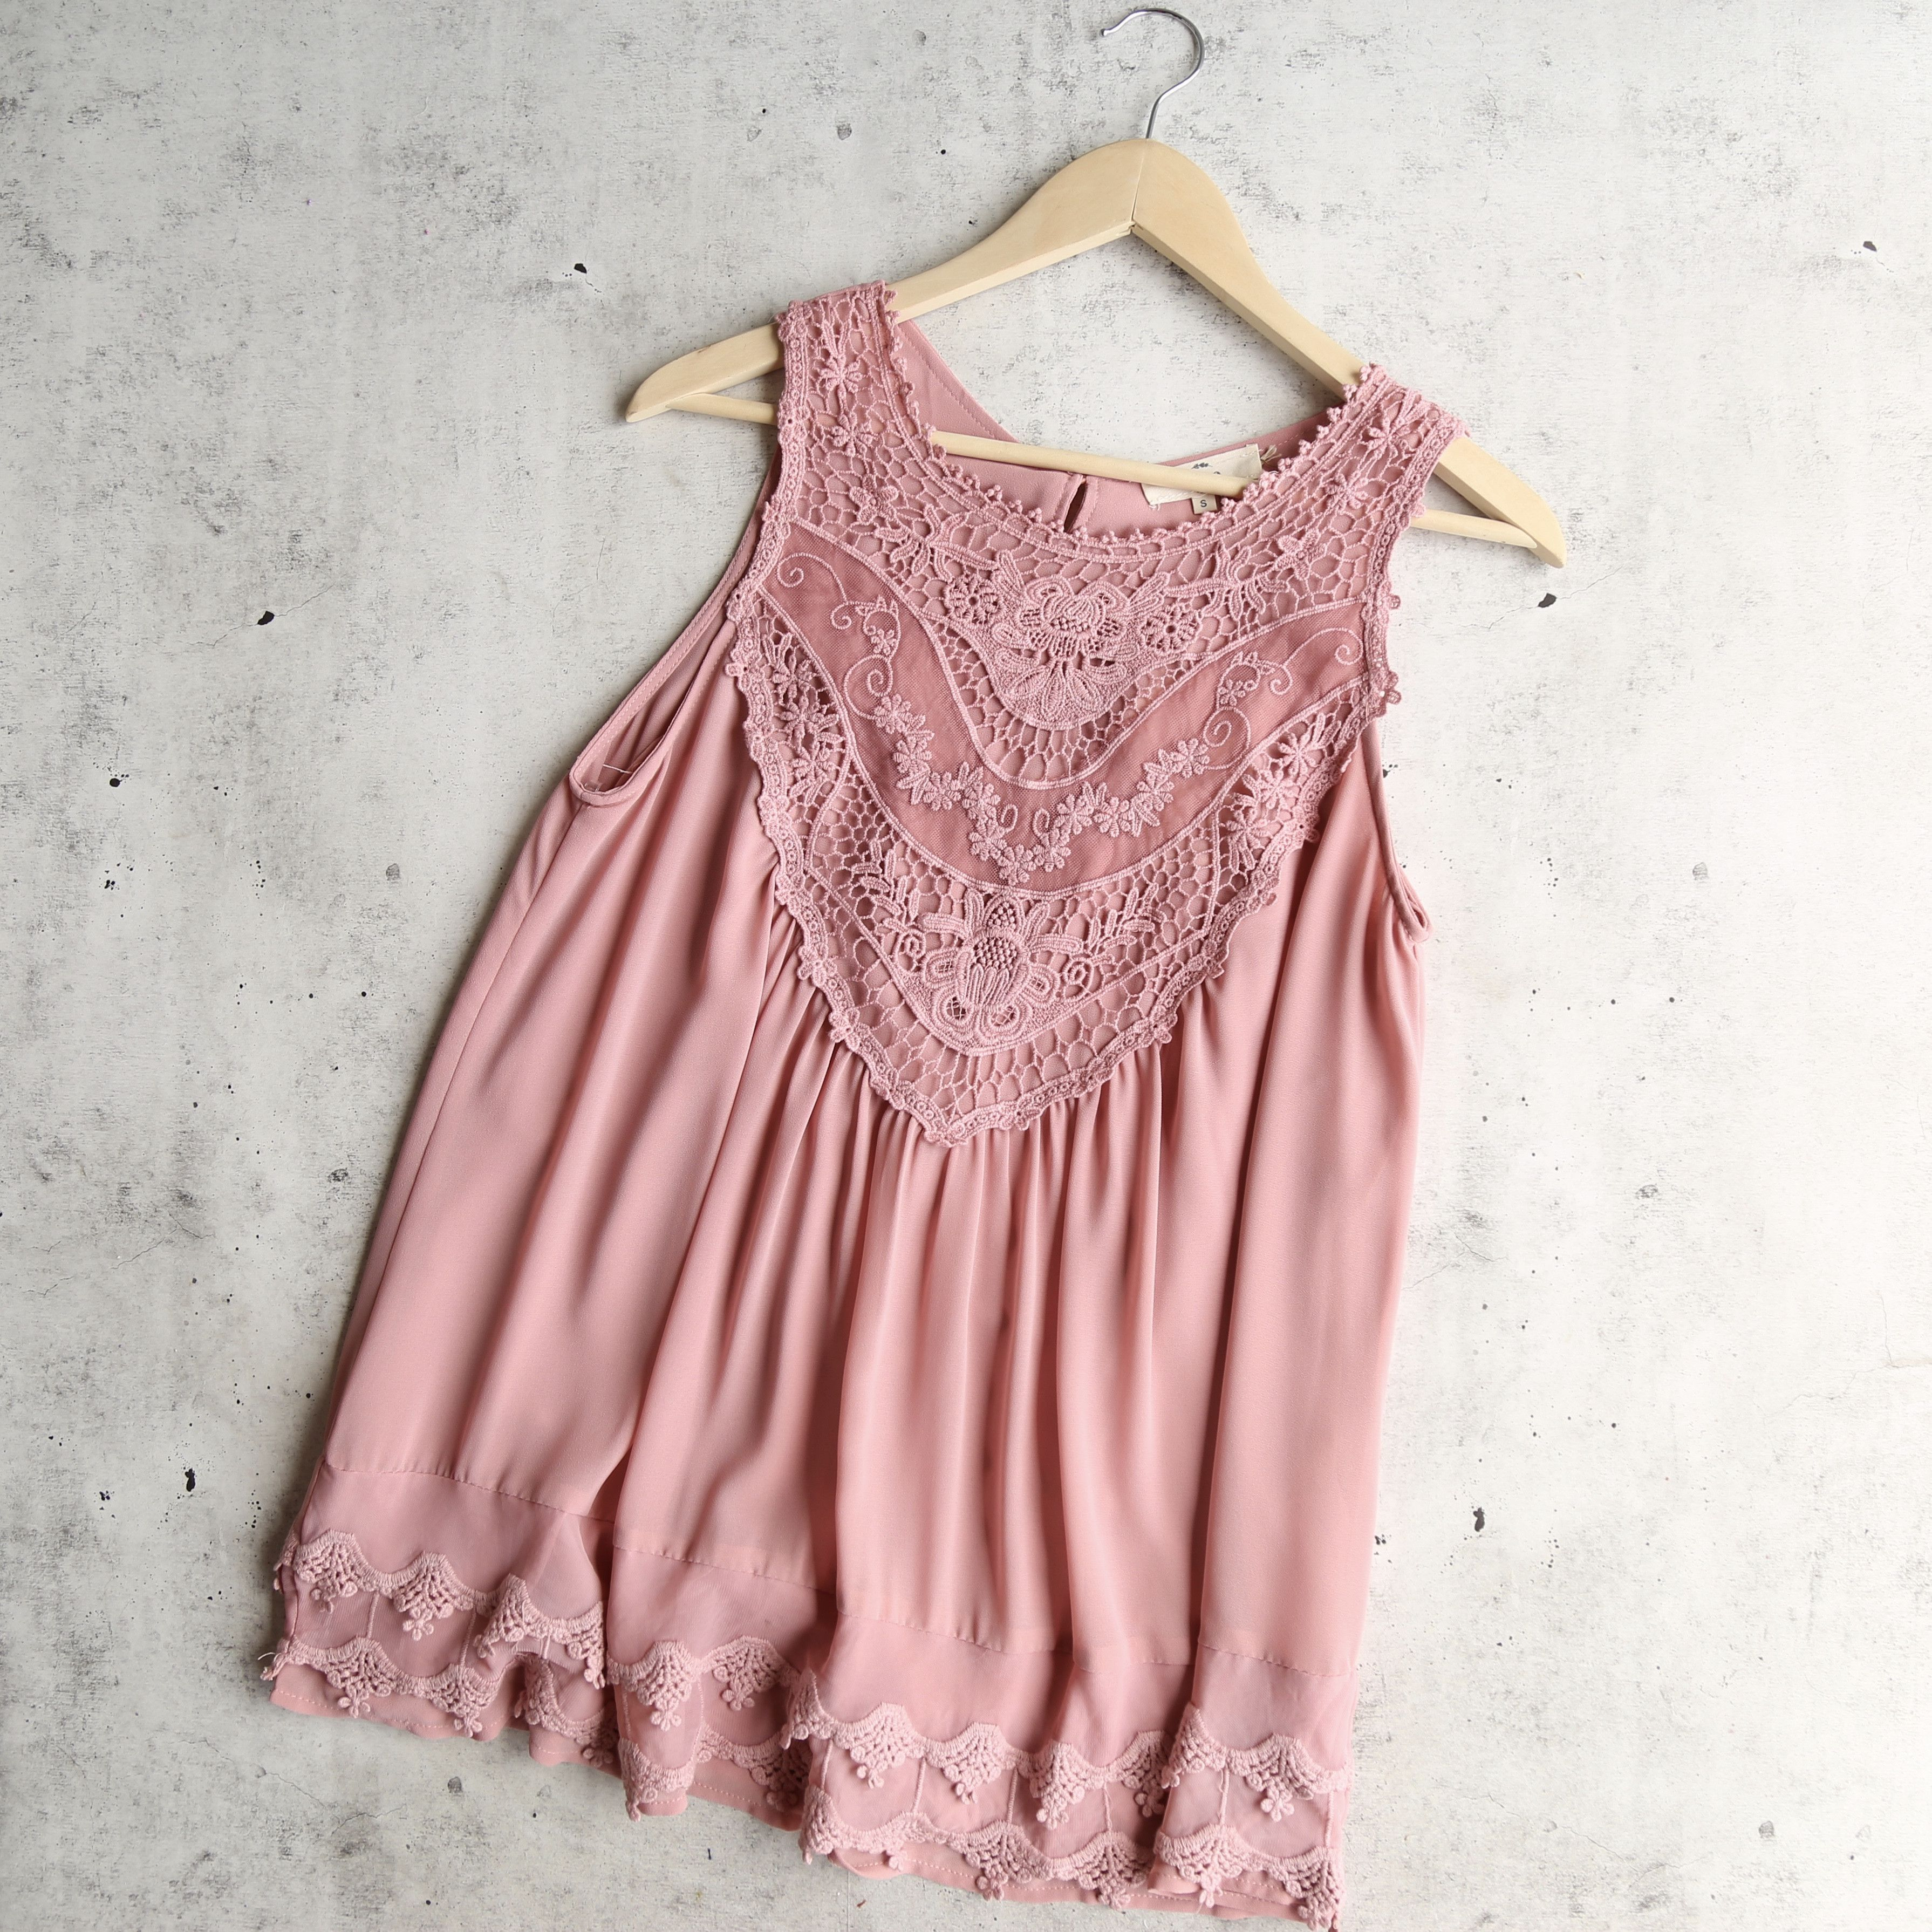 Angel lace flowy top - more colors | Blusas, Costura y Ropa